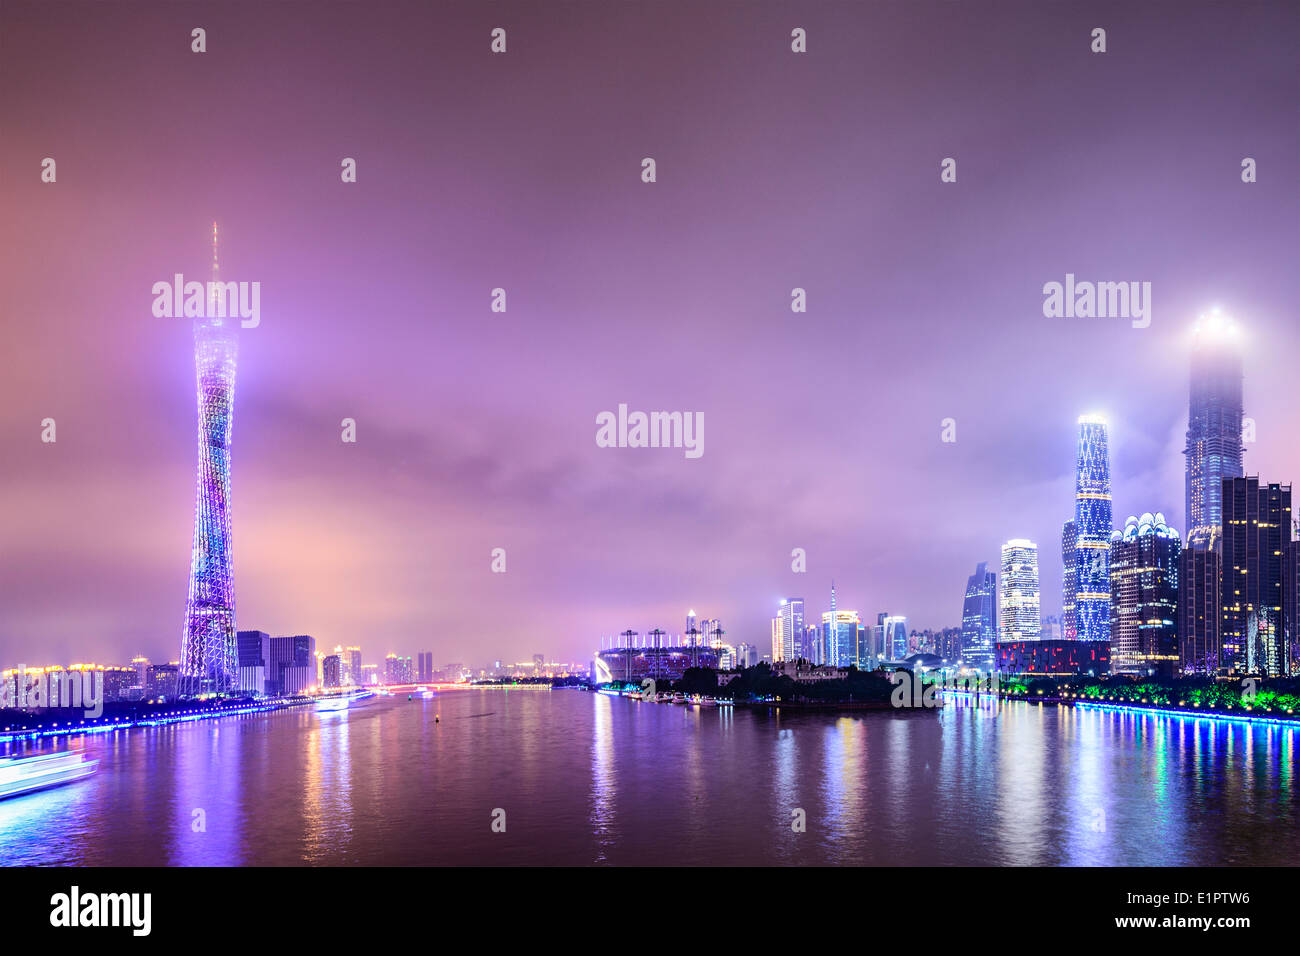 Guangzhou, China skyline on the Pearl River. - Stock Image